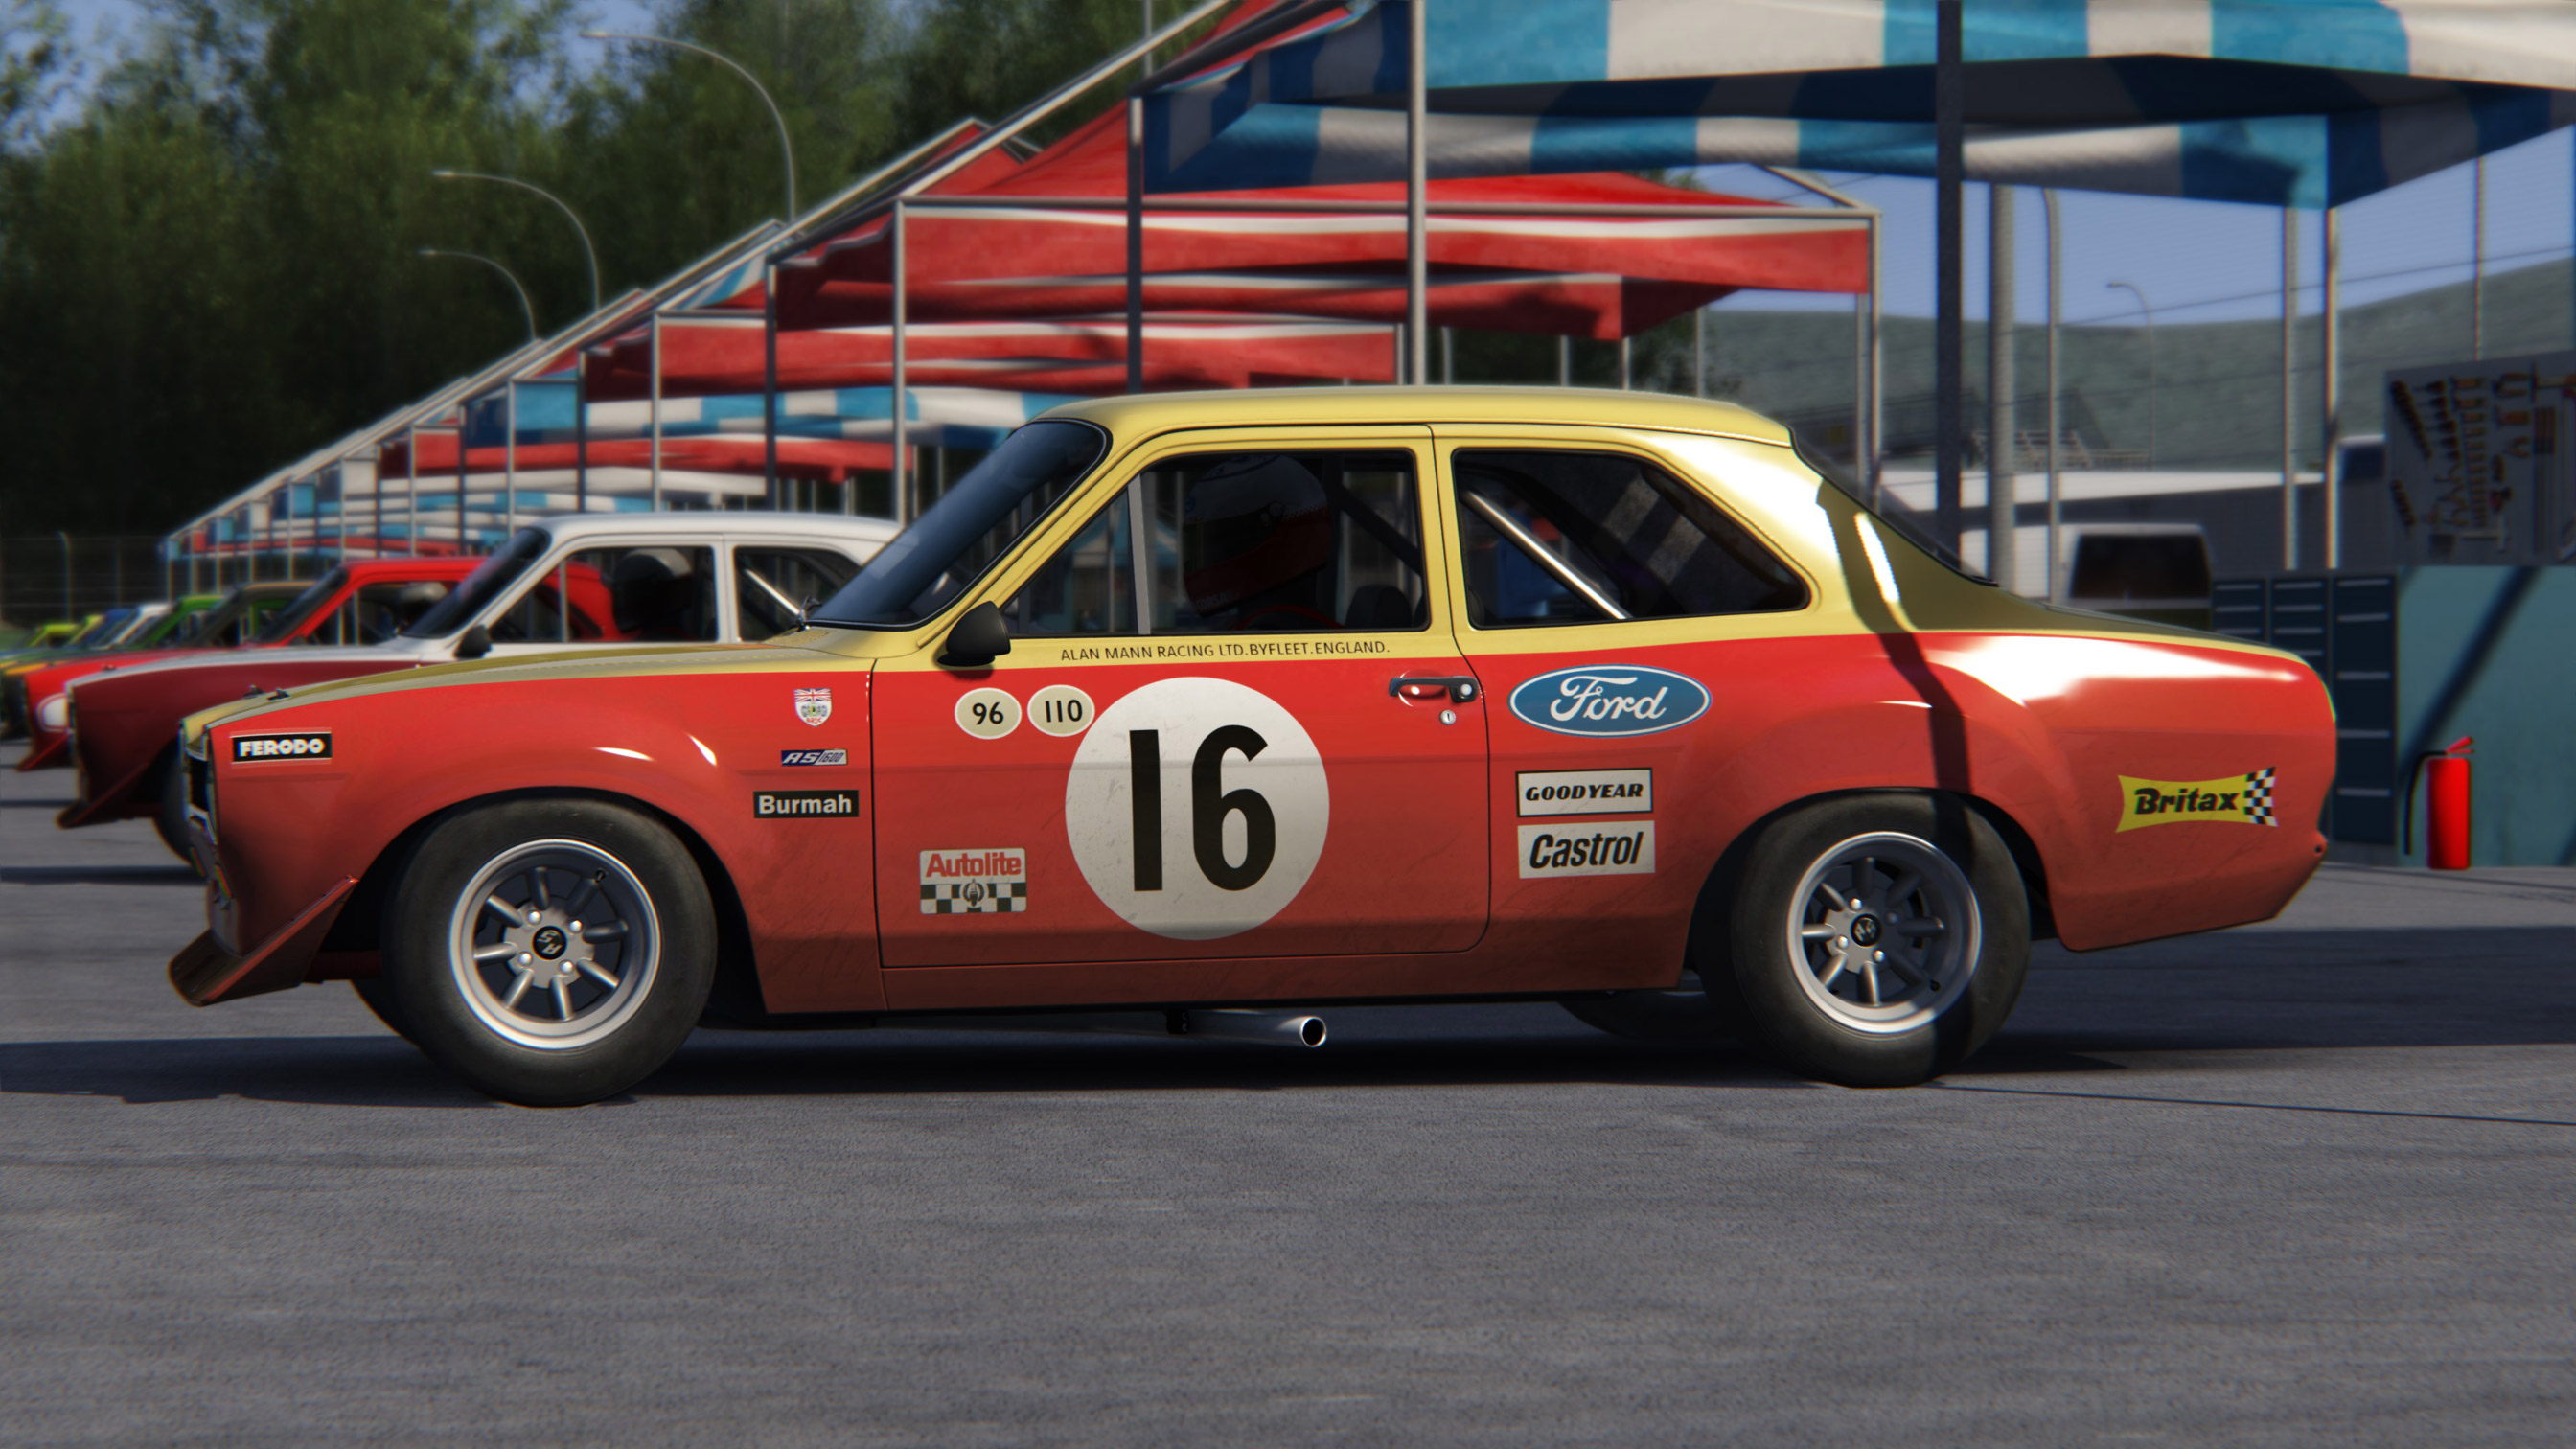 Screenshot_ks_ford_escort_mk1_mills11_31-12-115-16-8-35---Copy.jpg